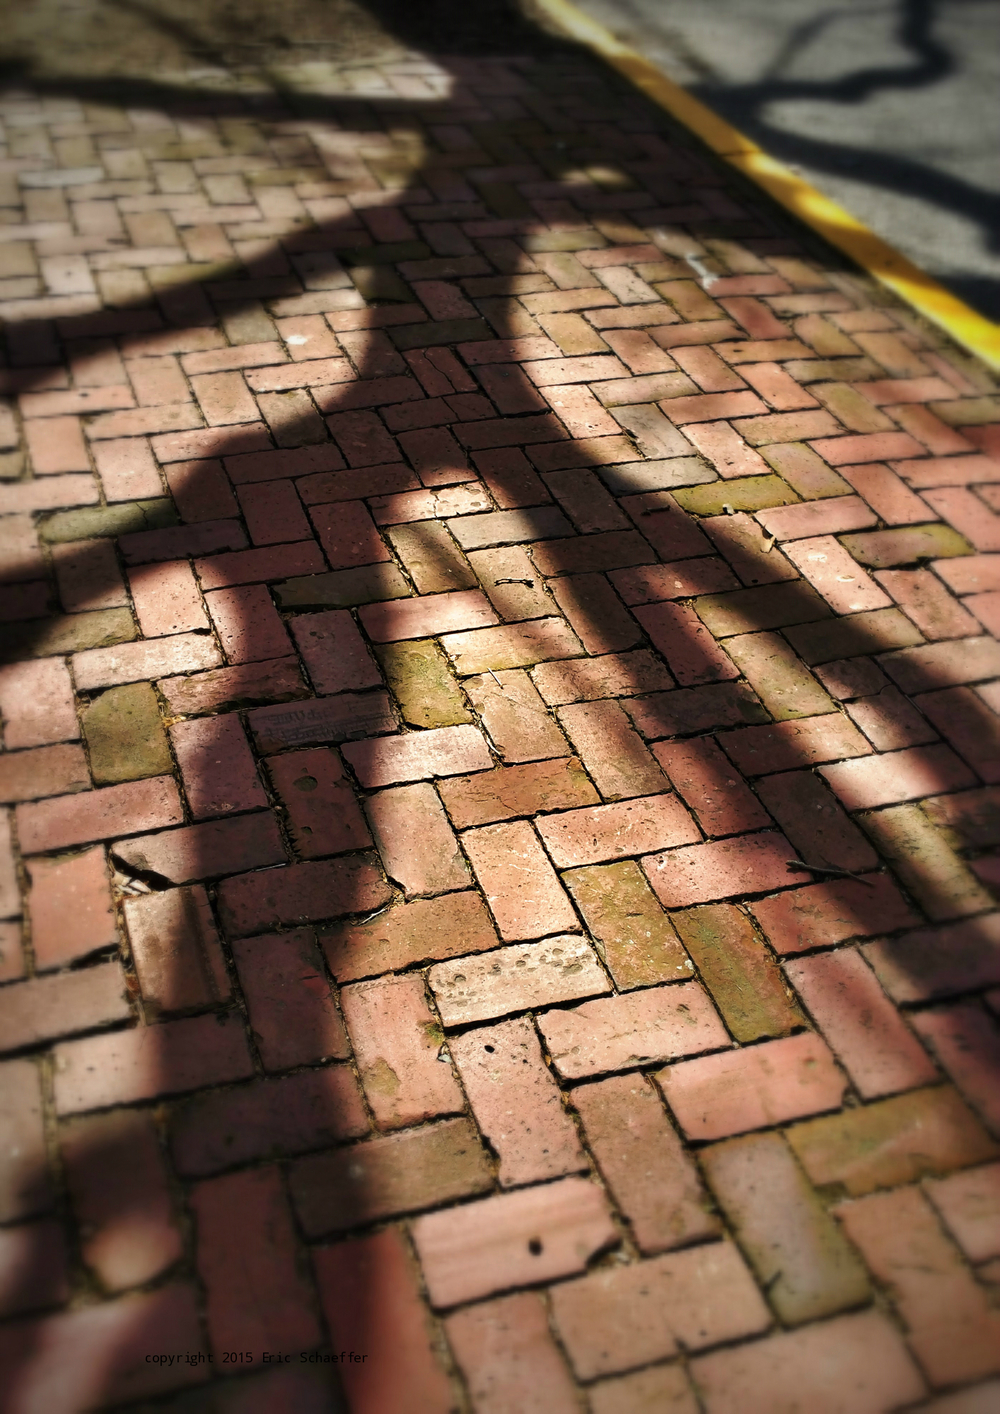 brickwalk.jpg